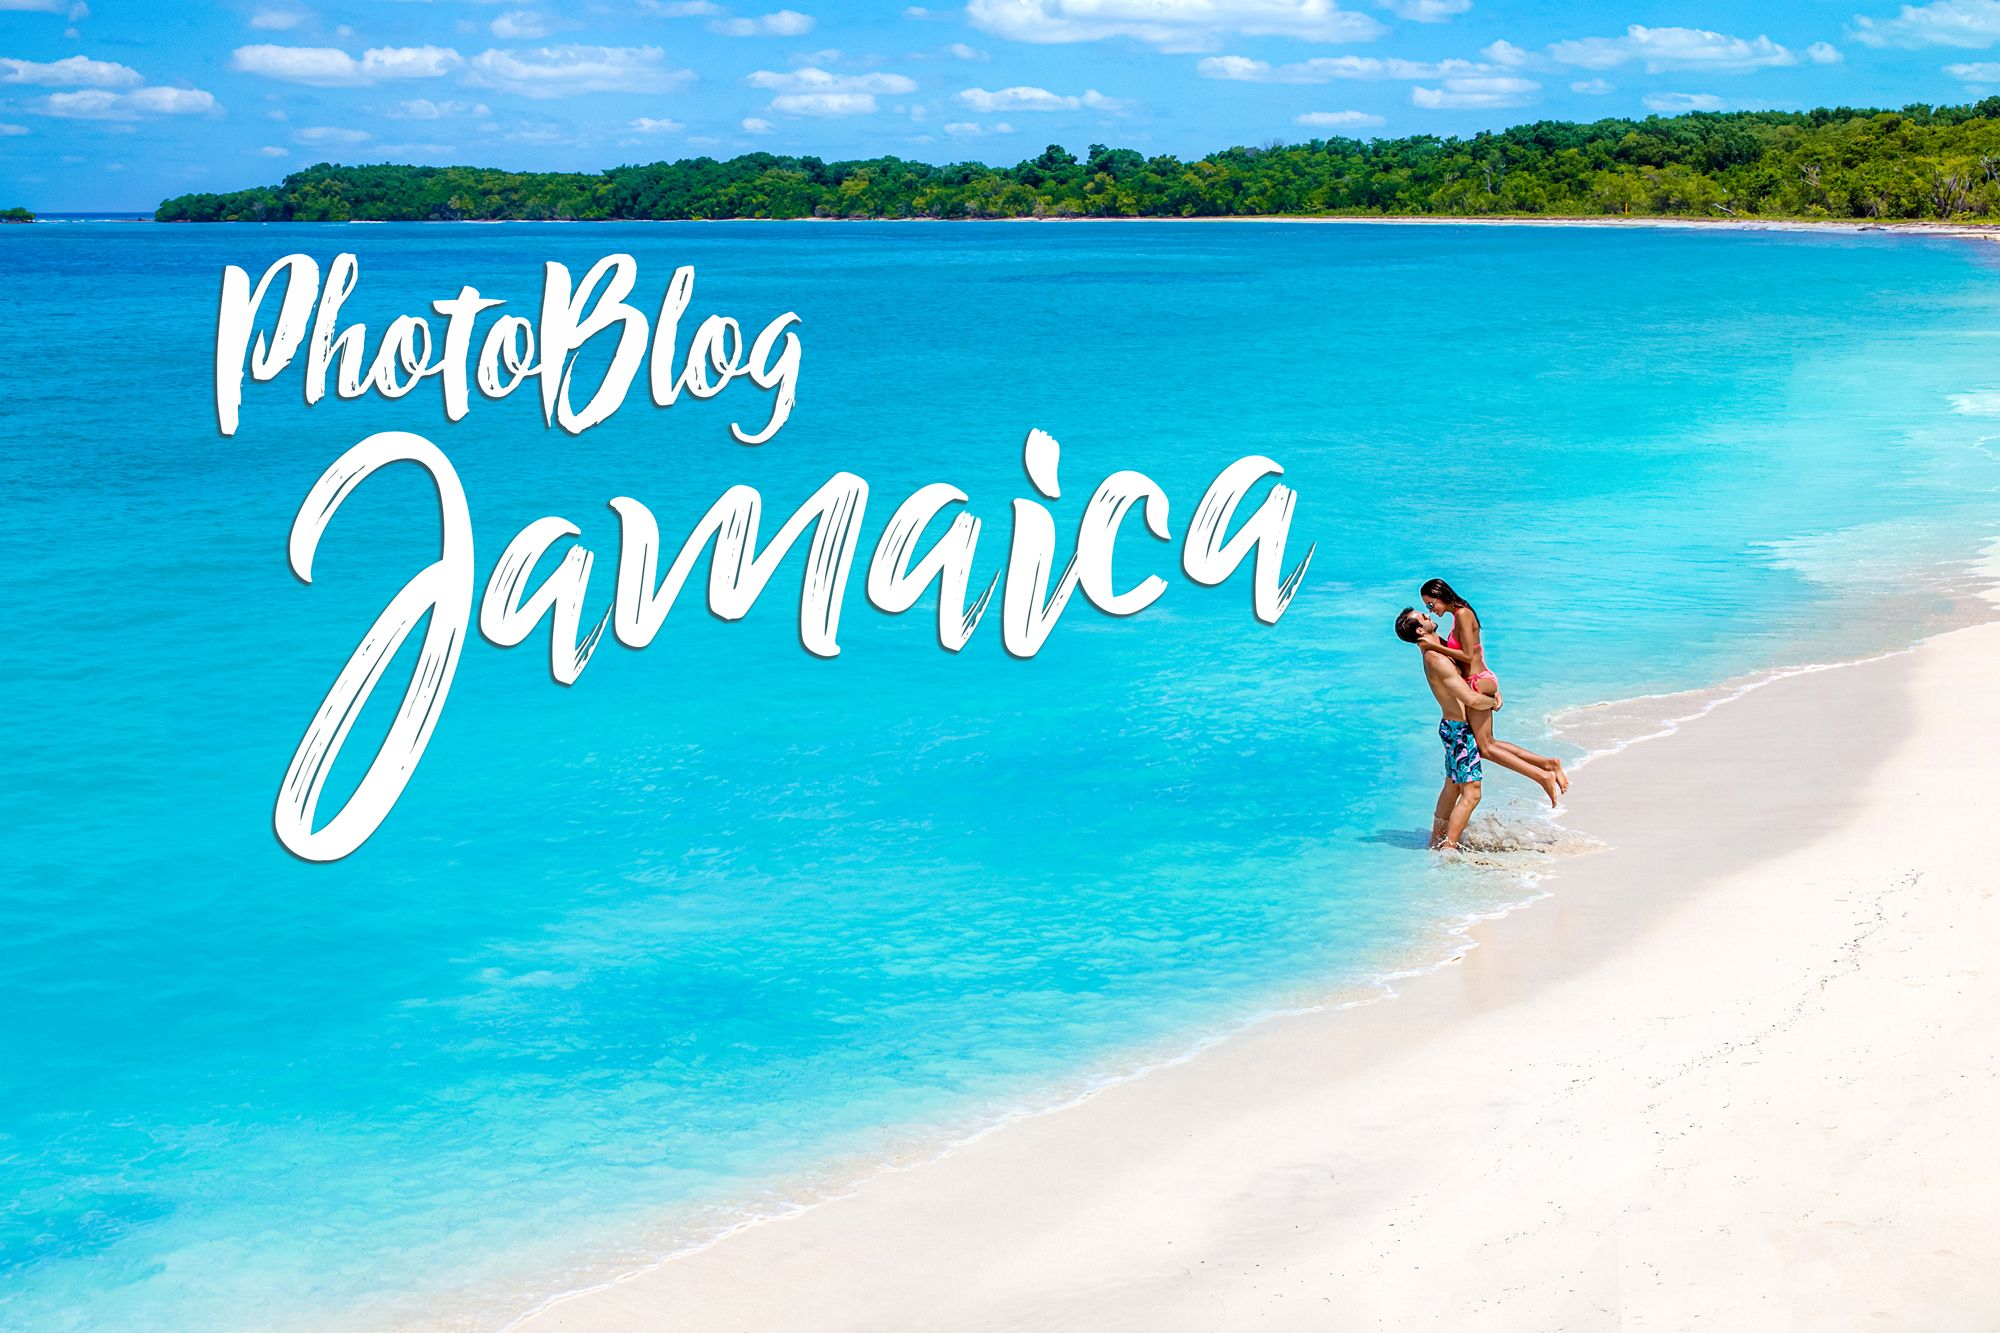 30 Pictures That Will Make You Fall In Love With Jamaica